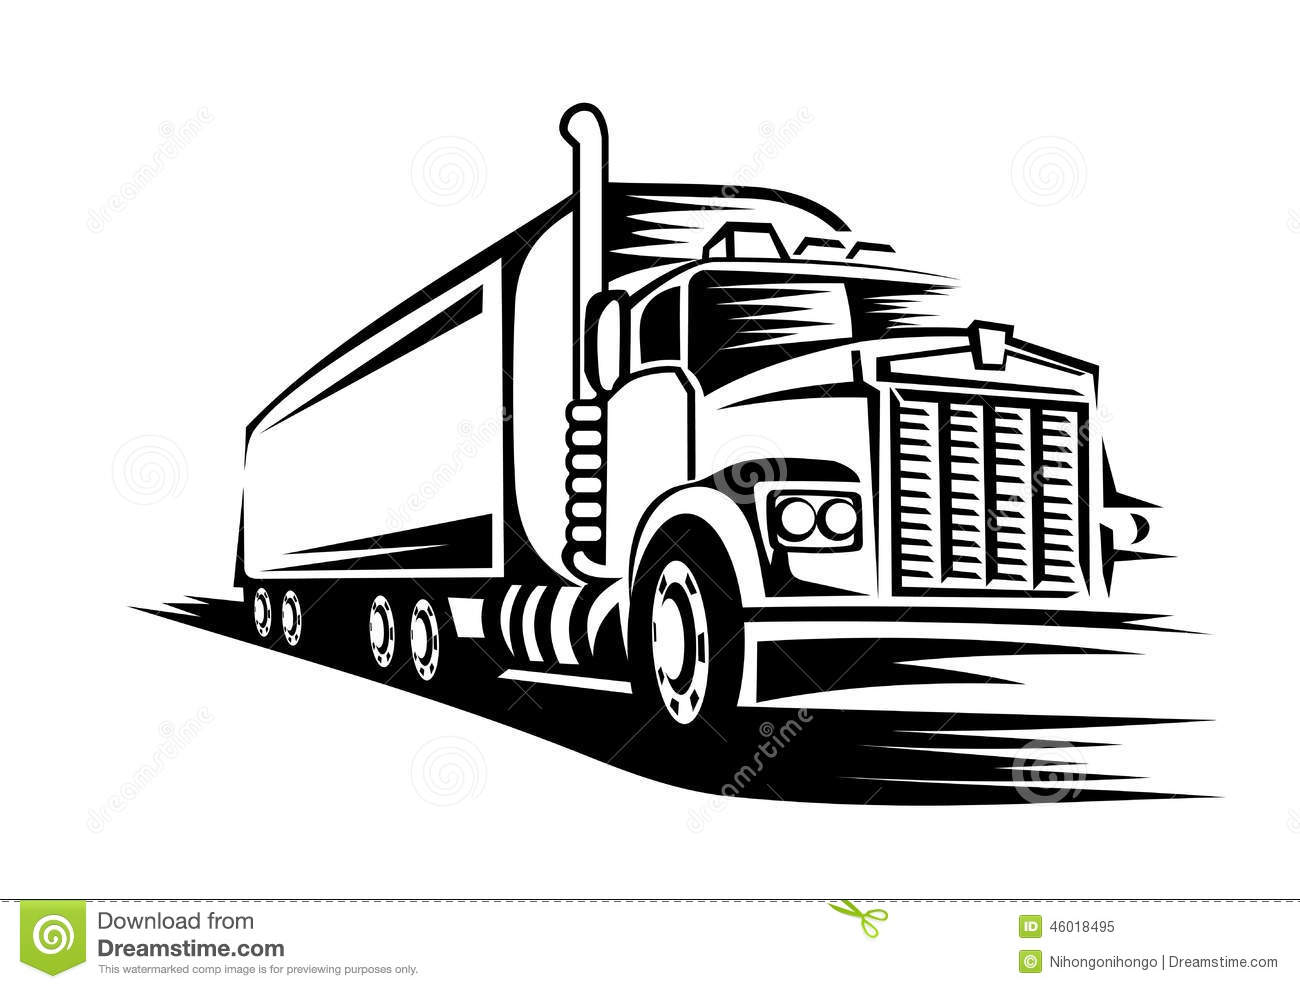 When Life Derails Your Plans likewise Stock Illustration Abstract Truck Logo Business Silhouette Image65087002 moreover Stock Photo Trailer Truck Image9624180 as well Semi Truck Tractor Trailer Silhouette Vinyl Sticker moreover . on semi truck clip art